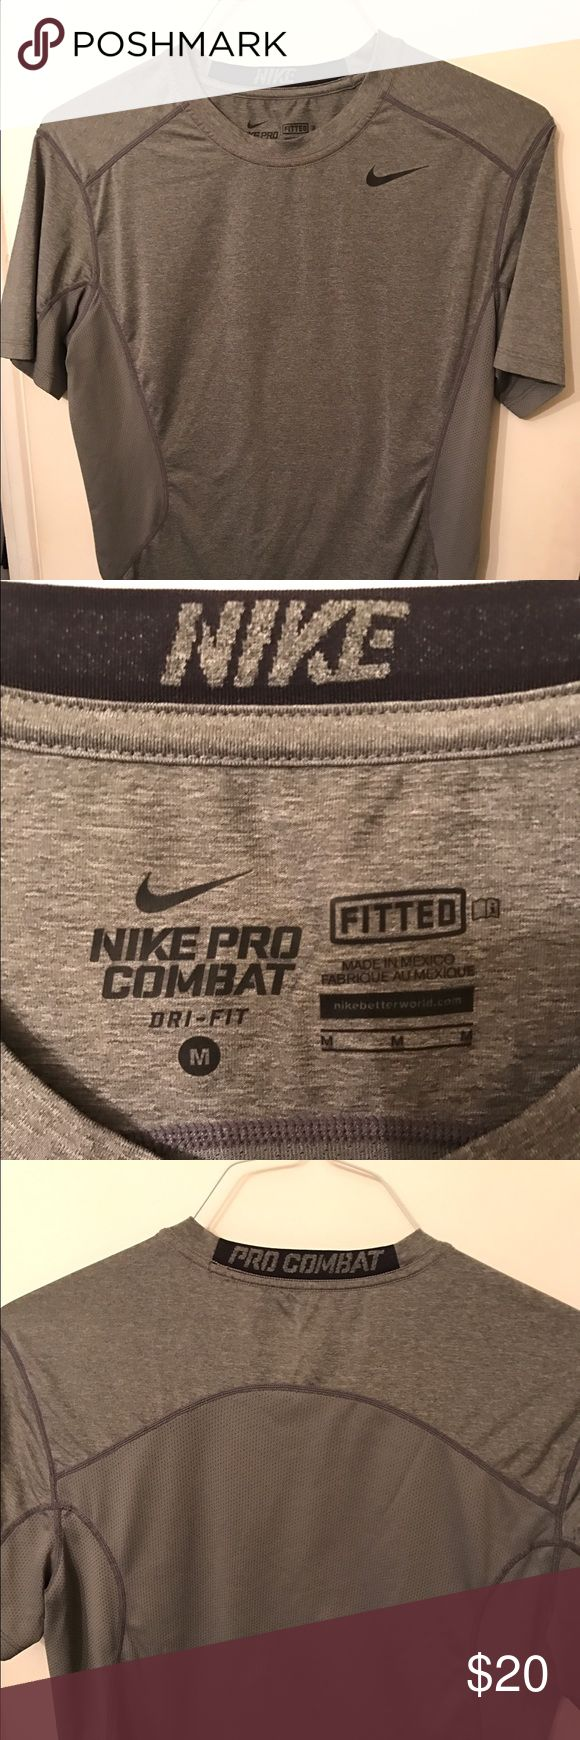 Nike Pro combat T-shirt in excellent condition Very nice Nike Pro combat T-shirt and excellent condition no rips tears or stains Nike Shirts Tees - Short Sleeve